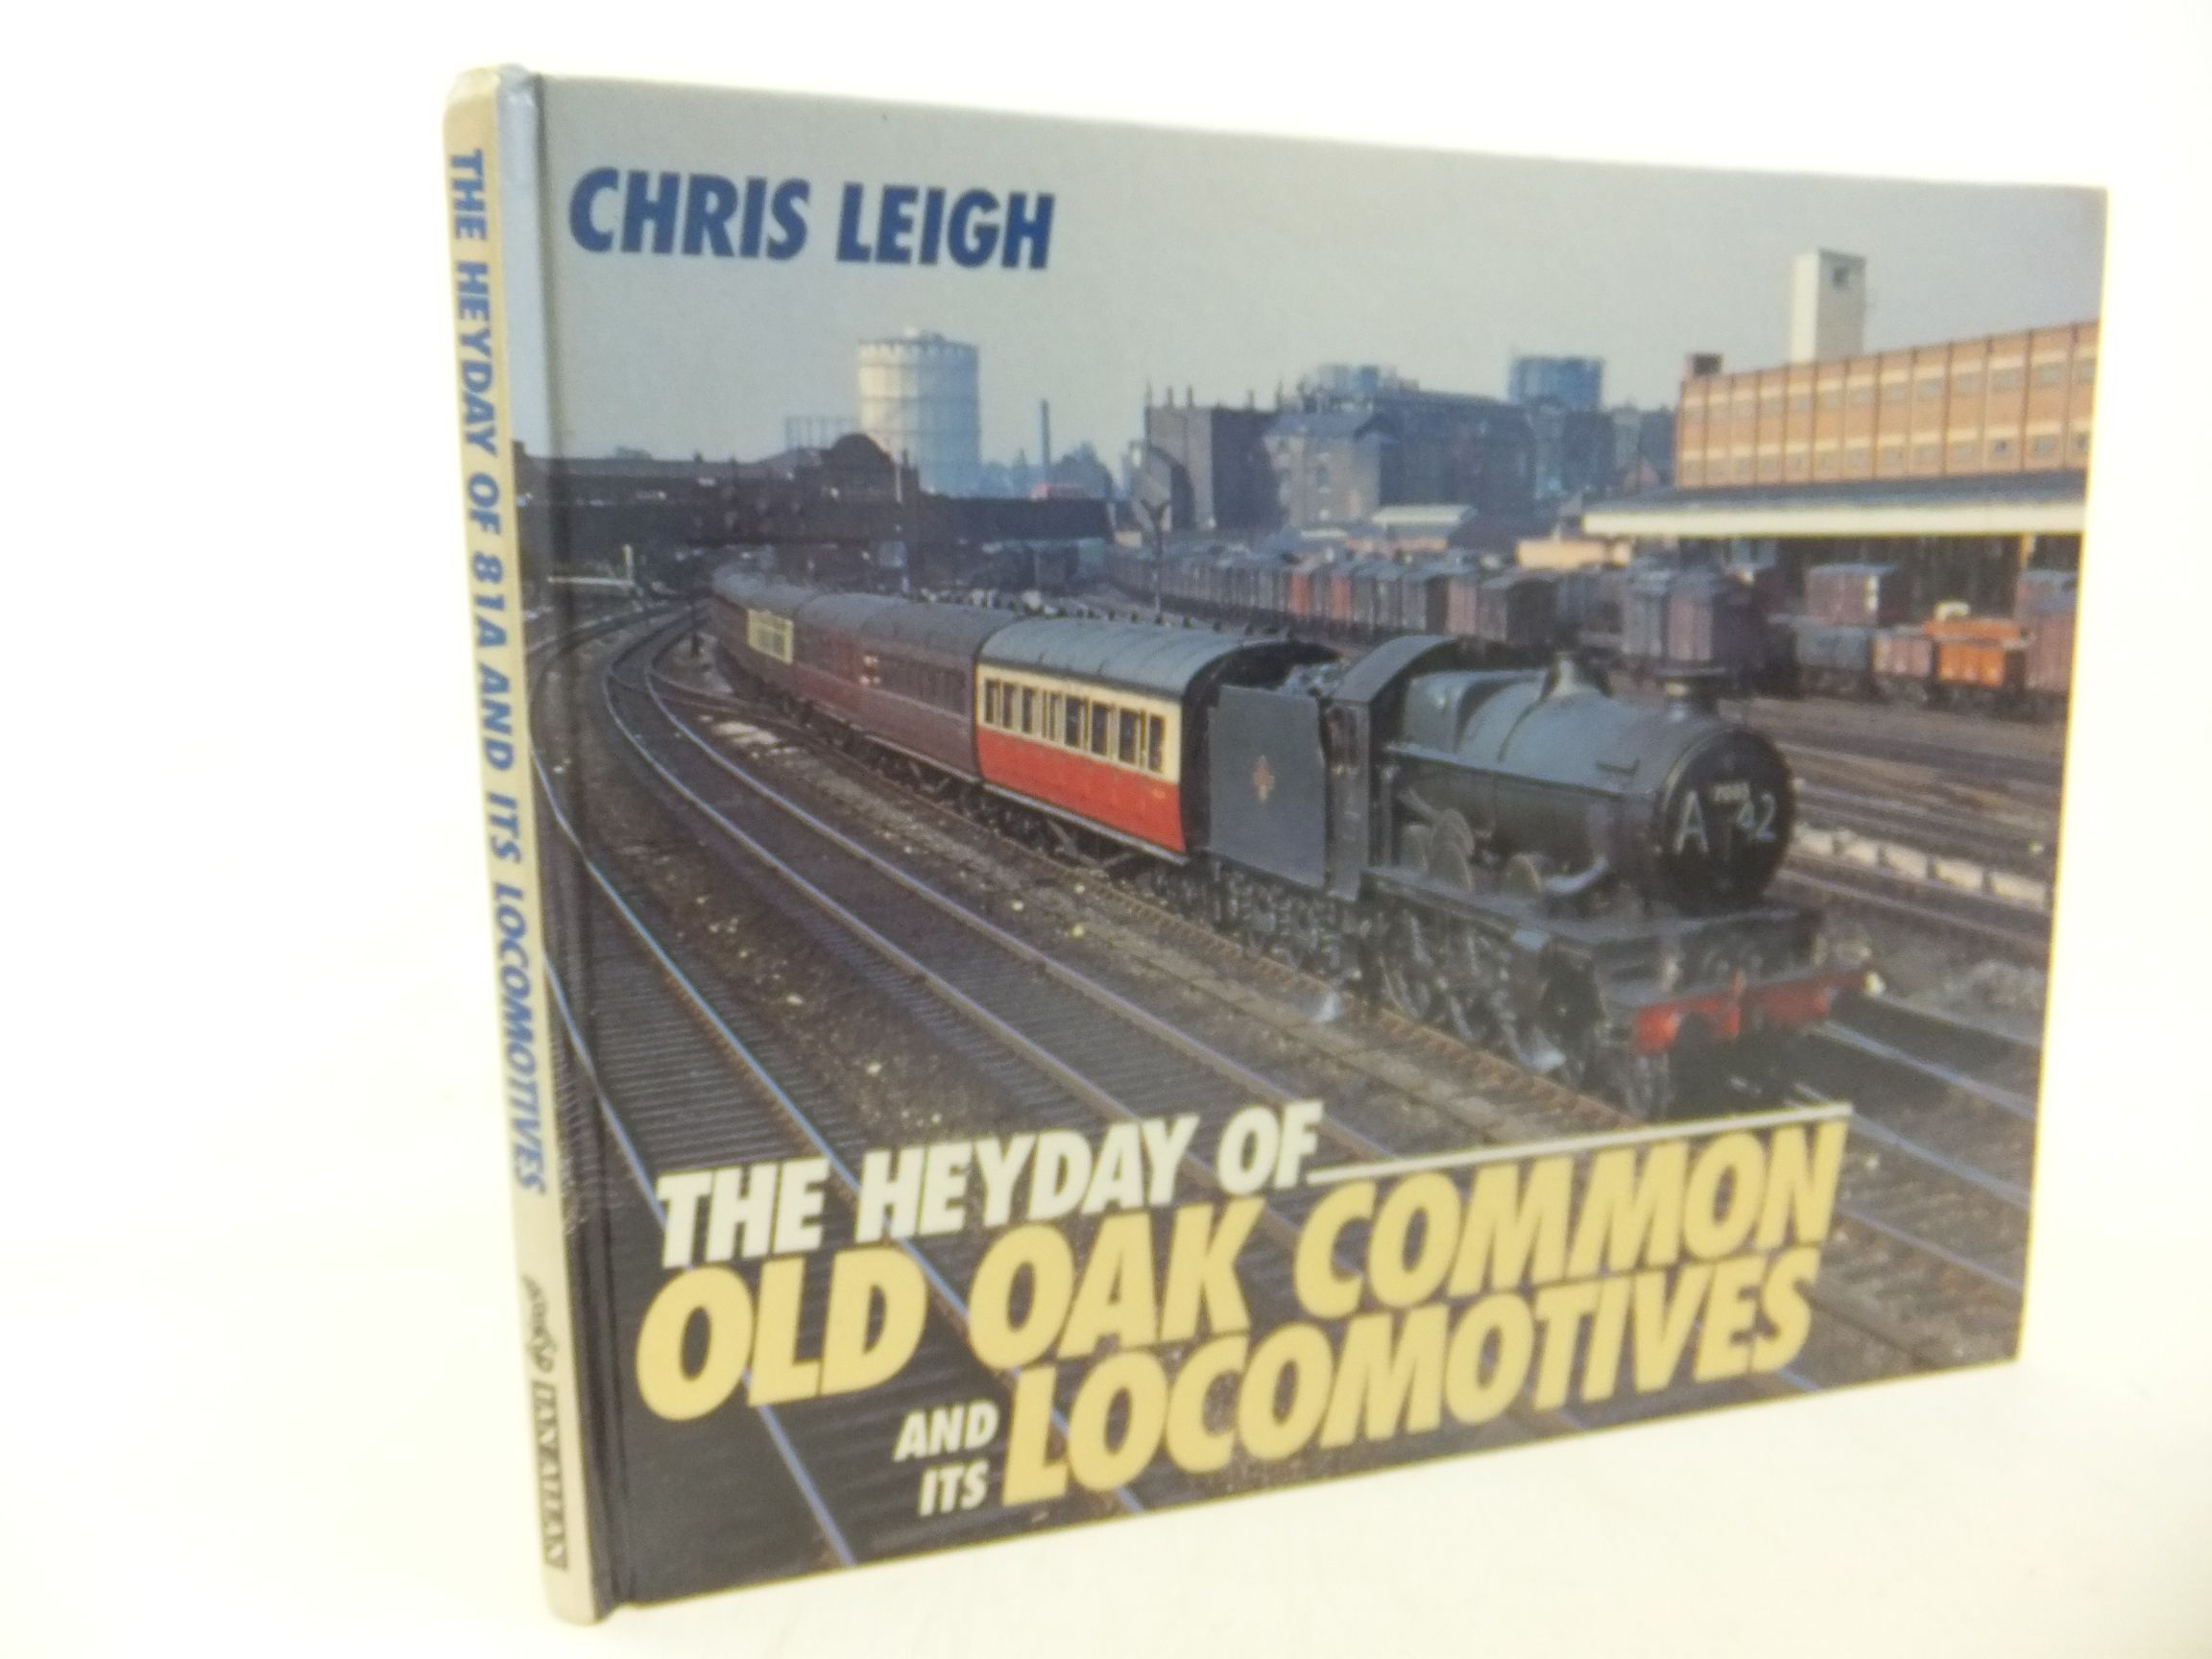 Photo of THE HEYDAY OF OLD OAK COMMON AND ITS LOCOMOTIVES written by Leigh, Chris published by Ian Allan Ltd. (STOCK CODE: 2117825)  for sale by Stella & Rose's Books